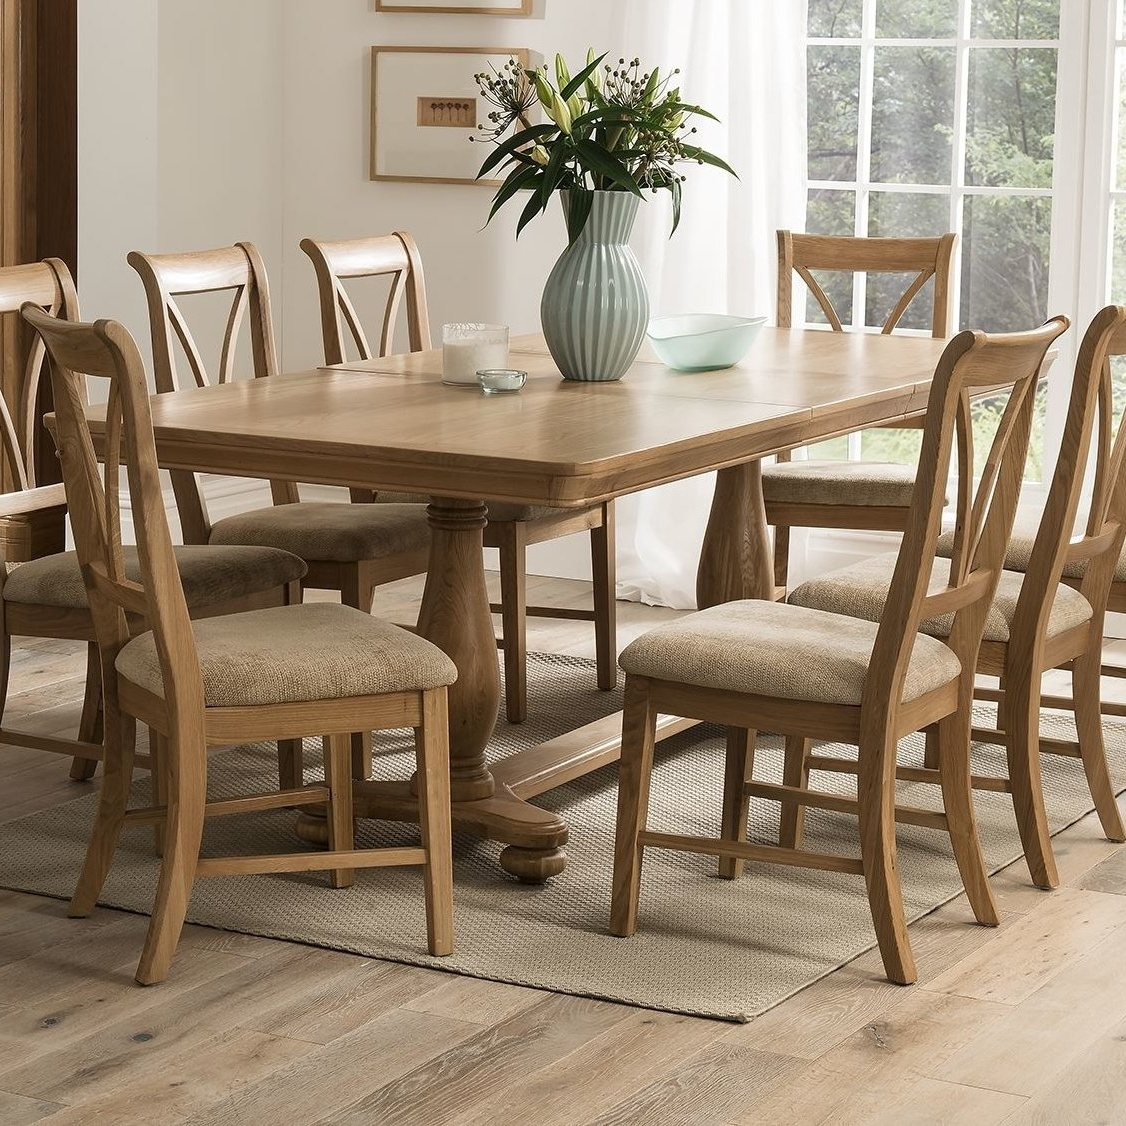 Newest Extendable Dining Tables With 6 Chairs For Homestead Living Rowan Extendable Dining Table And 6 Chairs (Gallery 14 of 25)